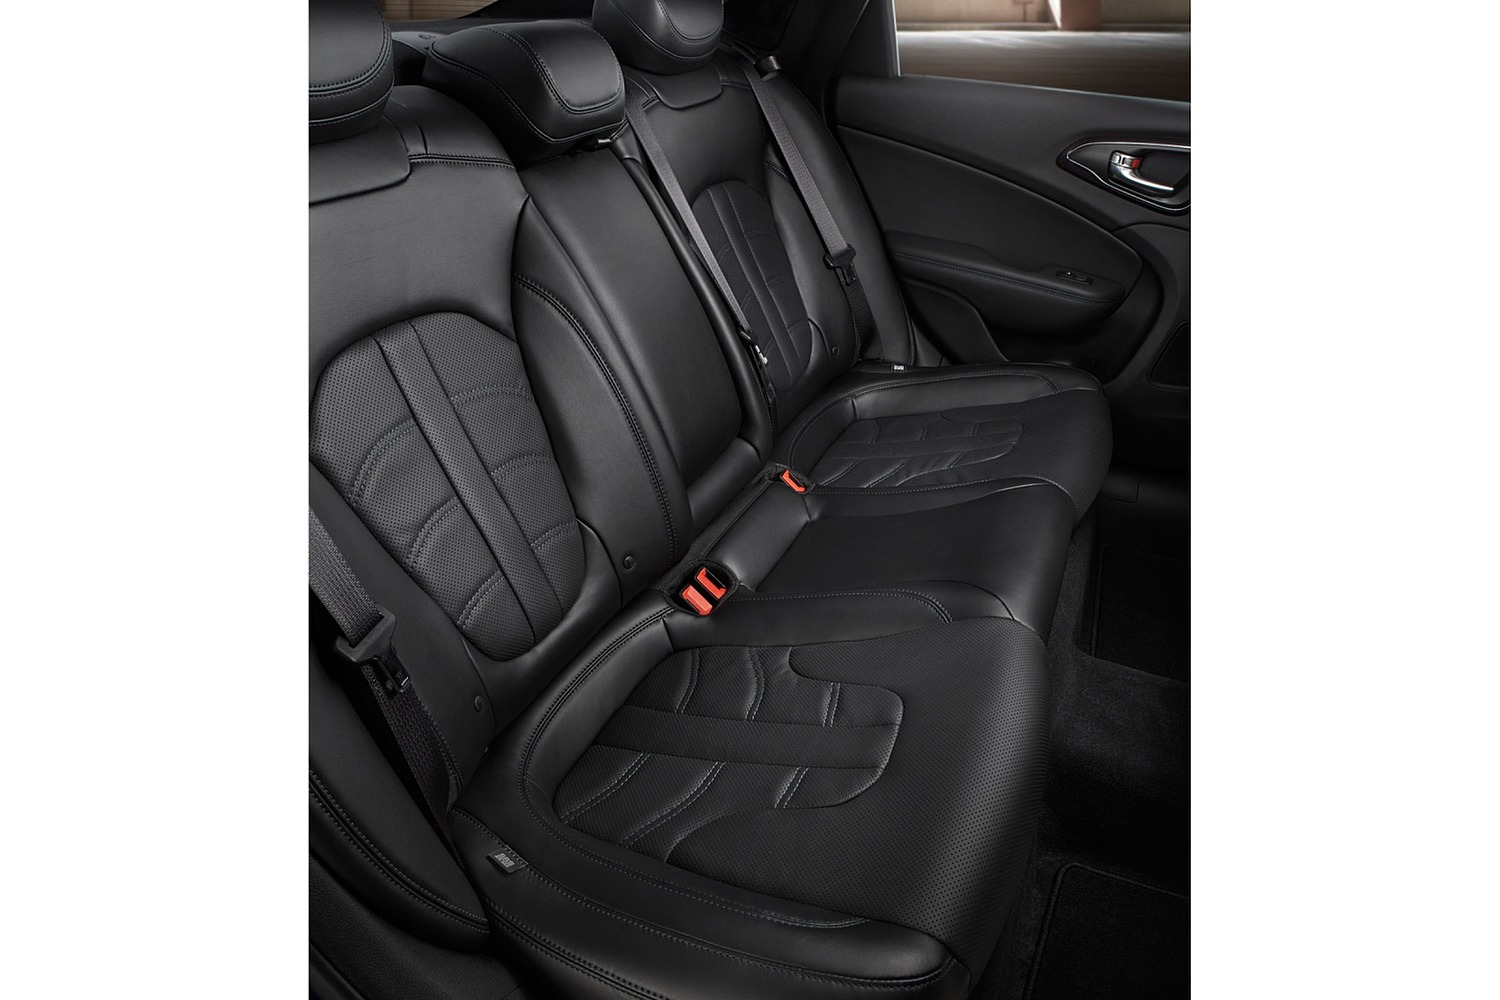 2016 Chrysler 200 S Sedan Rear Interior